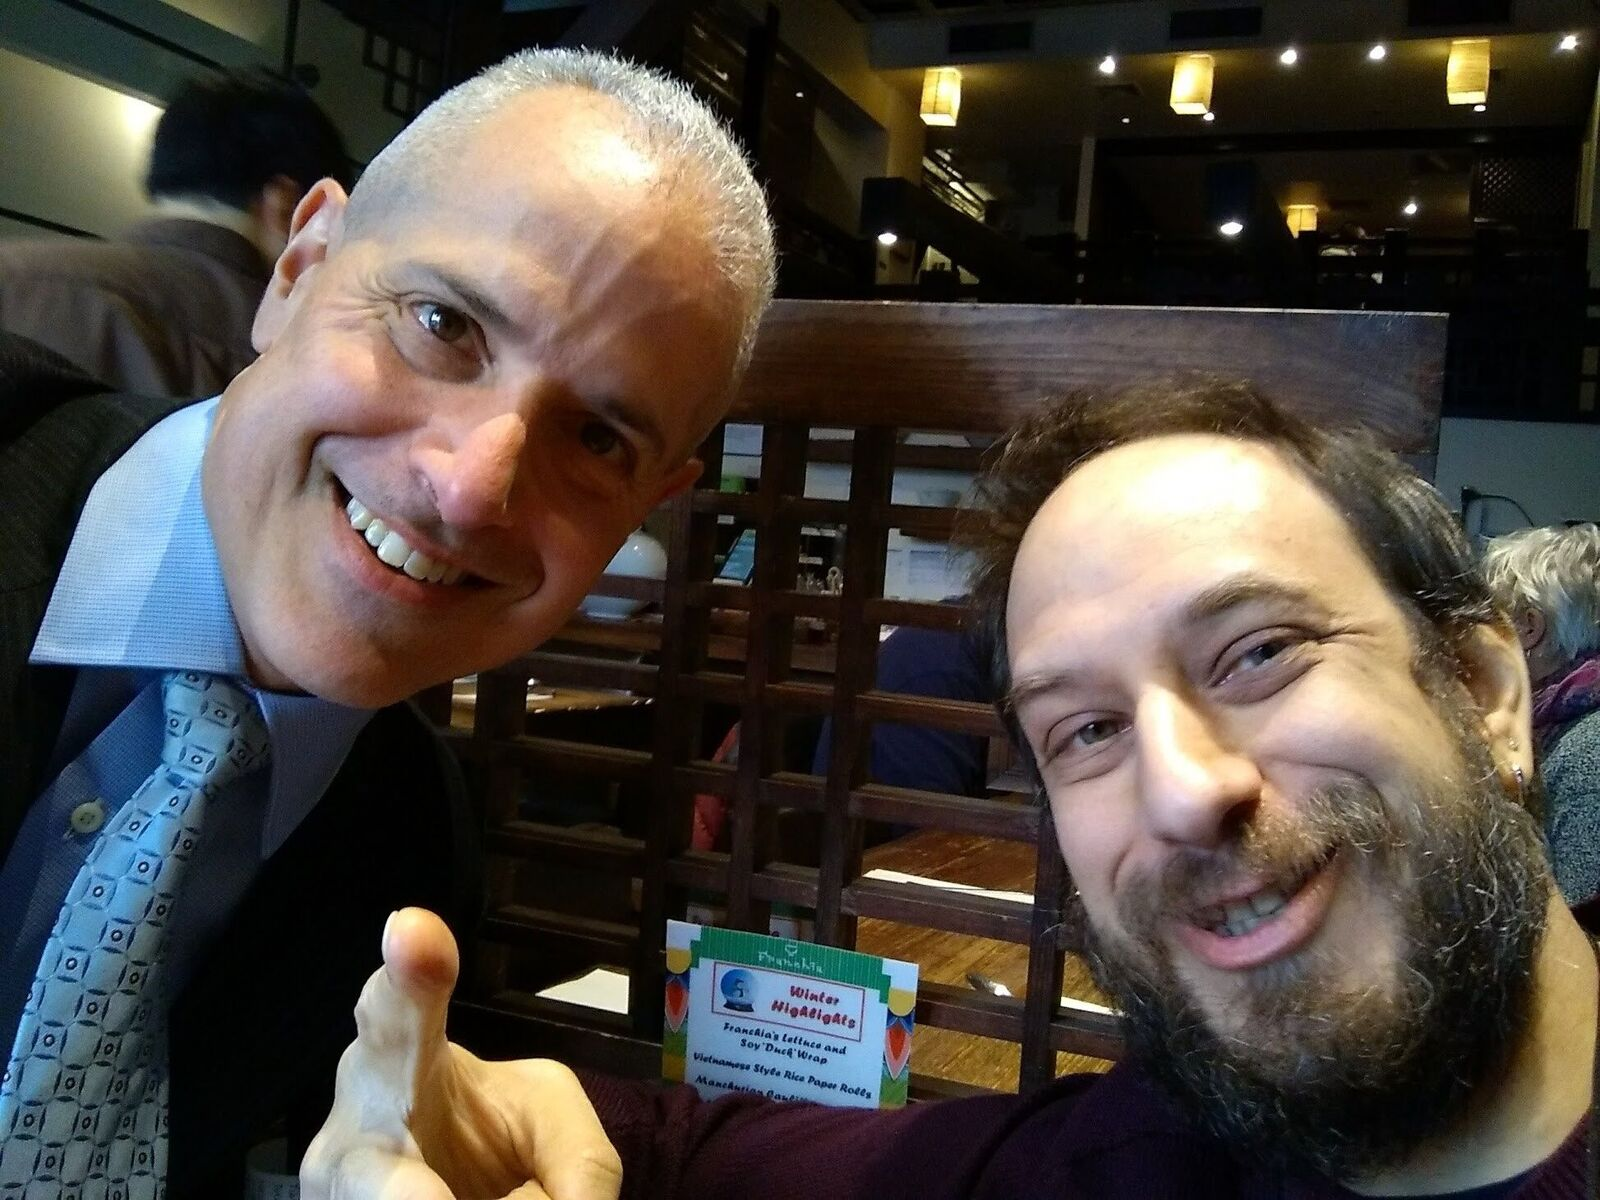 """NEW YORK   Divisionmates  Adam Birbrower  (1980-86) and  Adam Schefflan  (1981-89) met for lunch in New York City last spring and sent in the photo to the right. Adam Schefflan spends much of his summer in Rhinebeck, where he works part-time as a Lyft driver. A call for a pickup at a certain location in Elizaville """"was inevitable."""" His dad  Ralph Schefflan  worked at Scatico from 1954-57 and played basketball under Nat Holman at CCNY."""